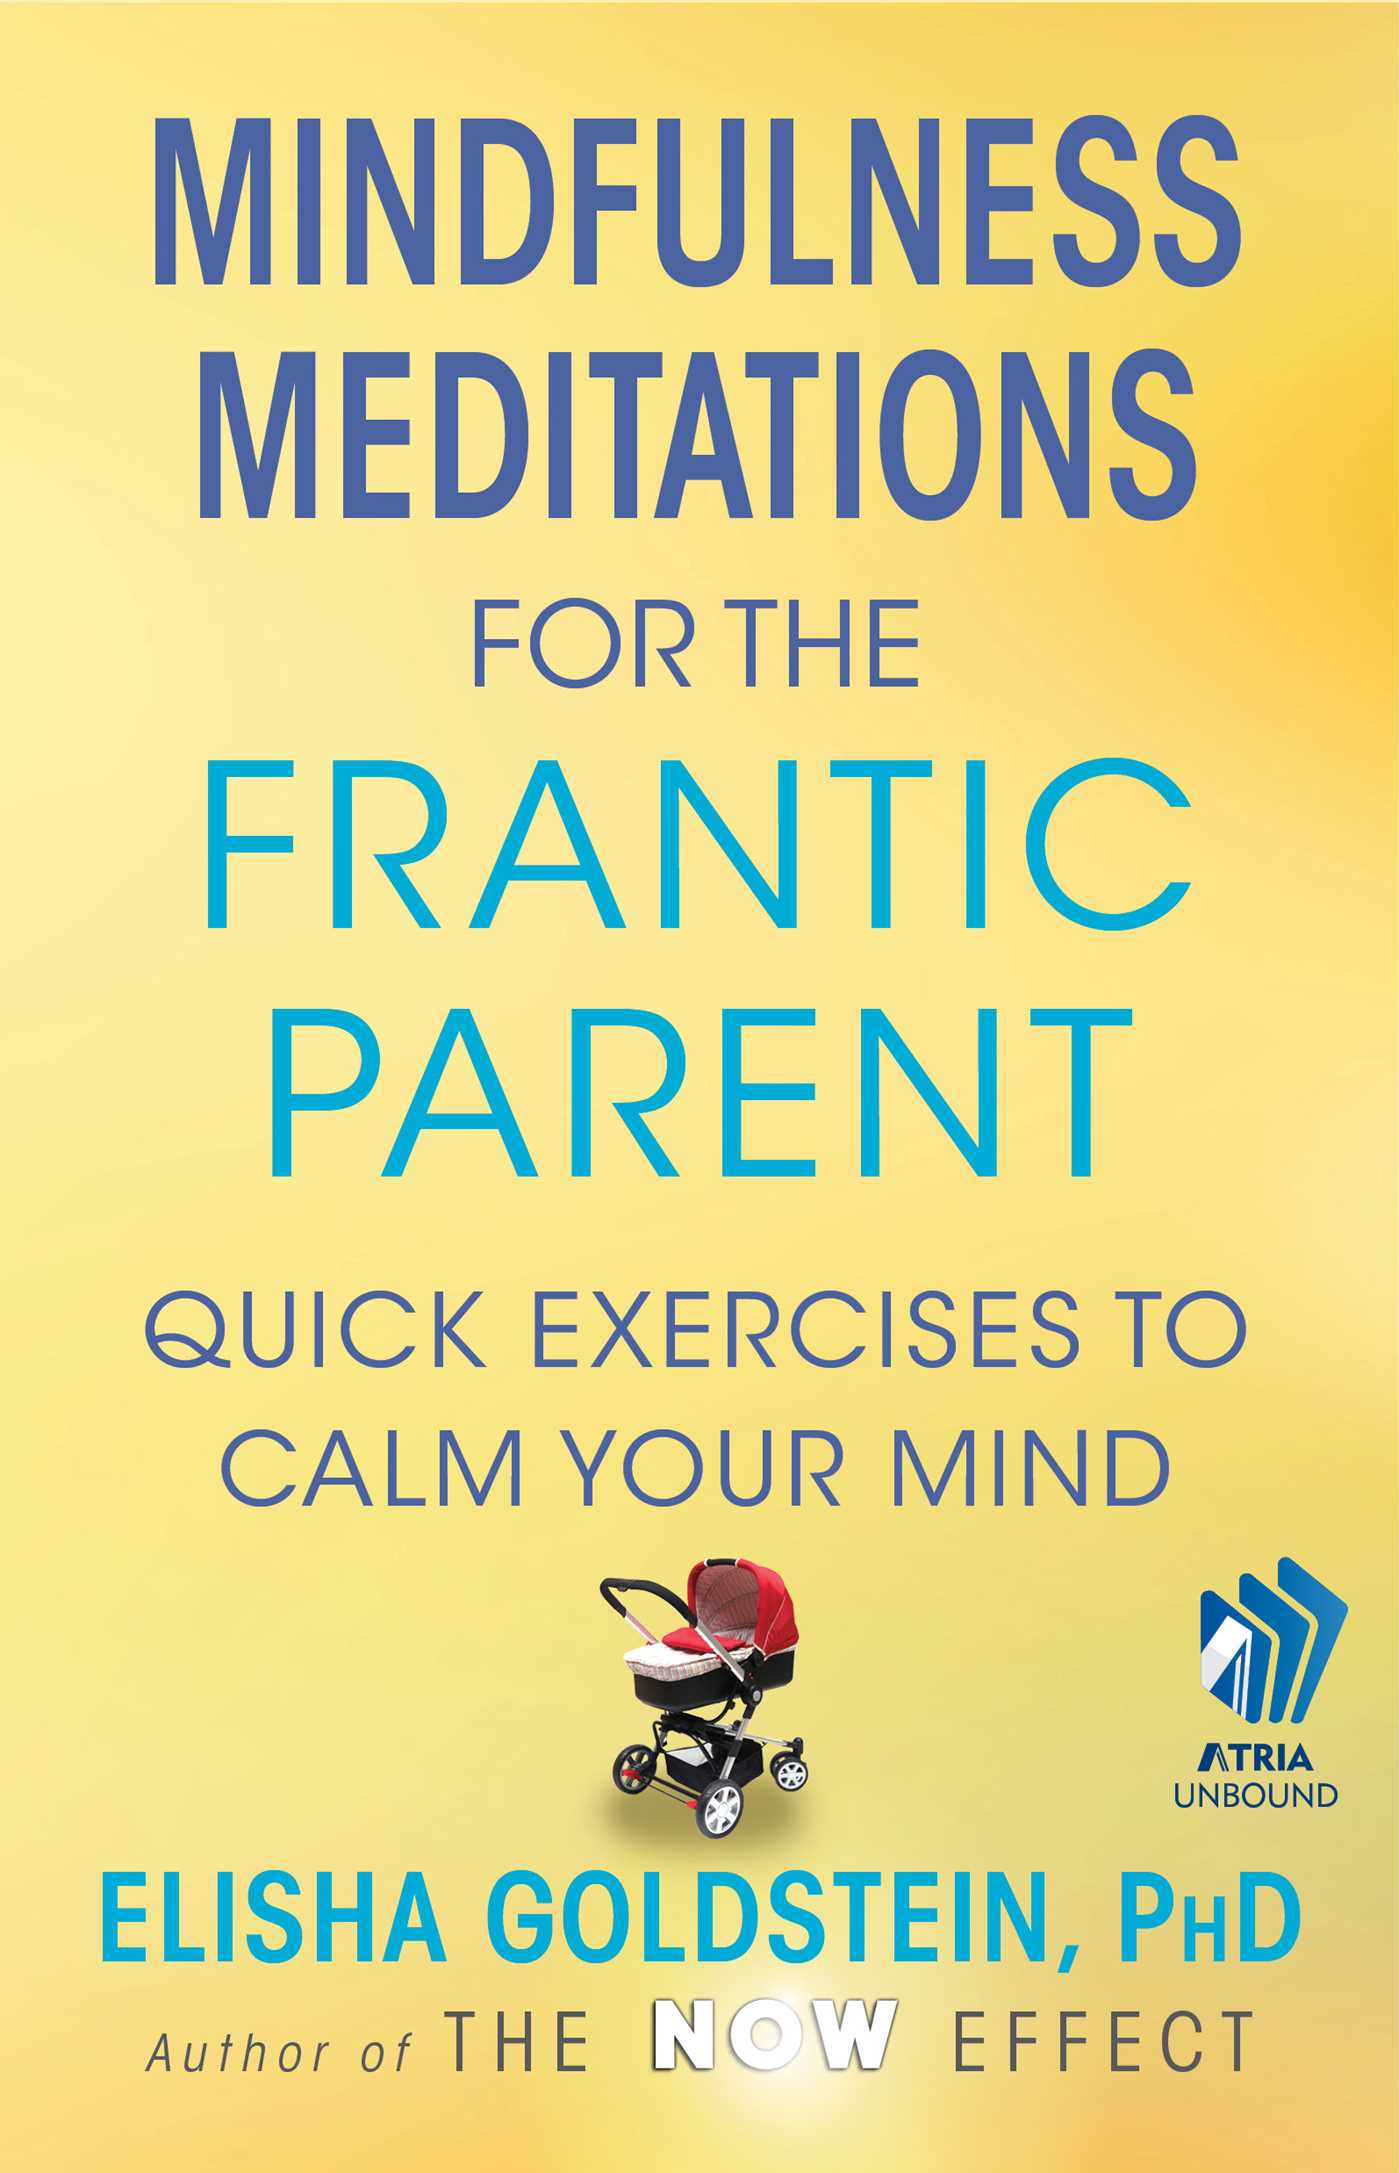 Mindfulness meditations for the frantic parent 9781451687118 hr